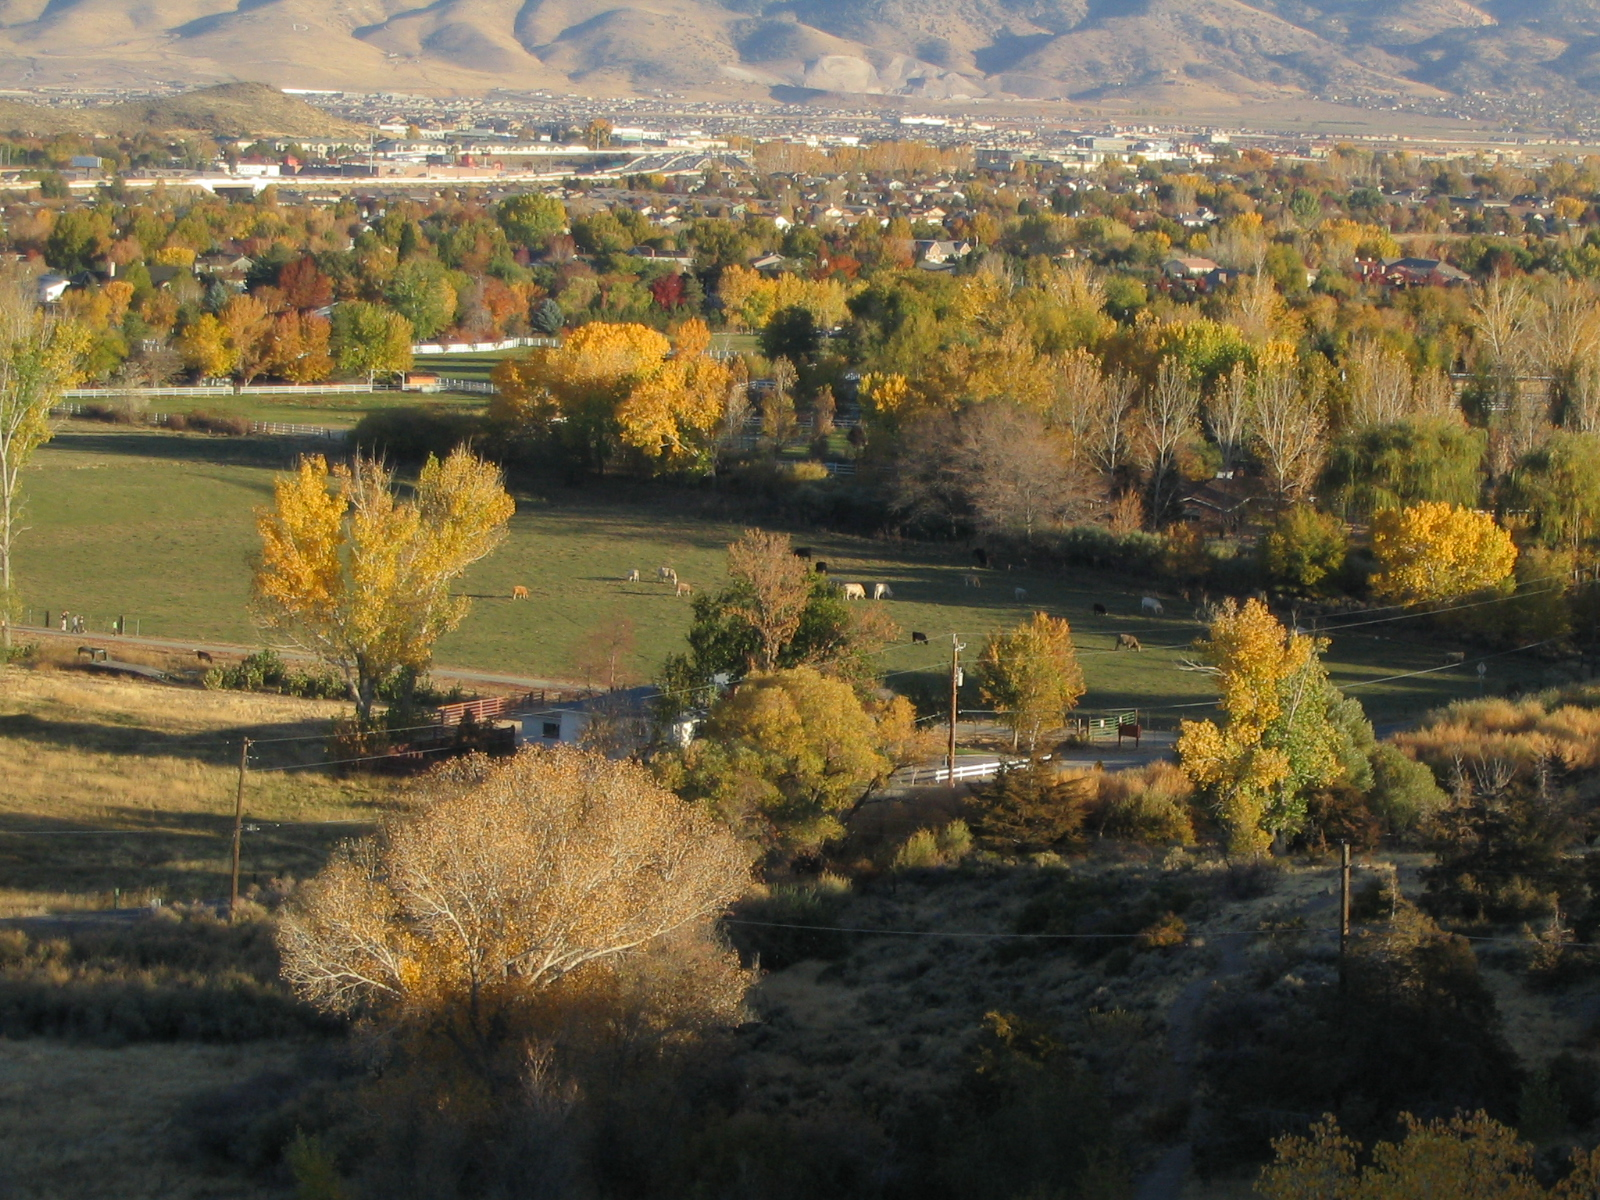 South Reno from Windy Hill, Lakeside Drive, Reno, Nevada